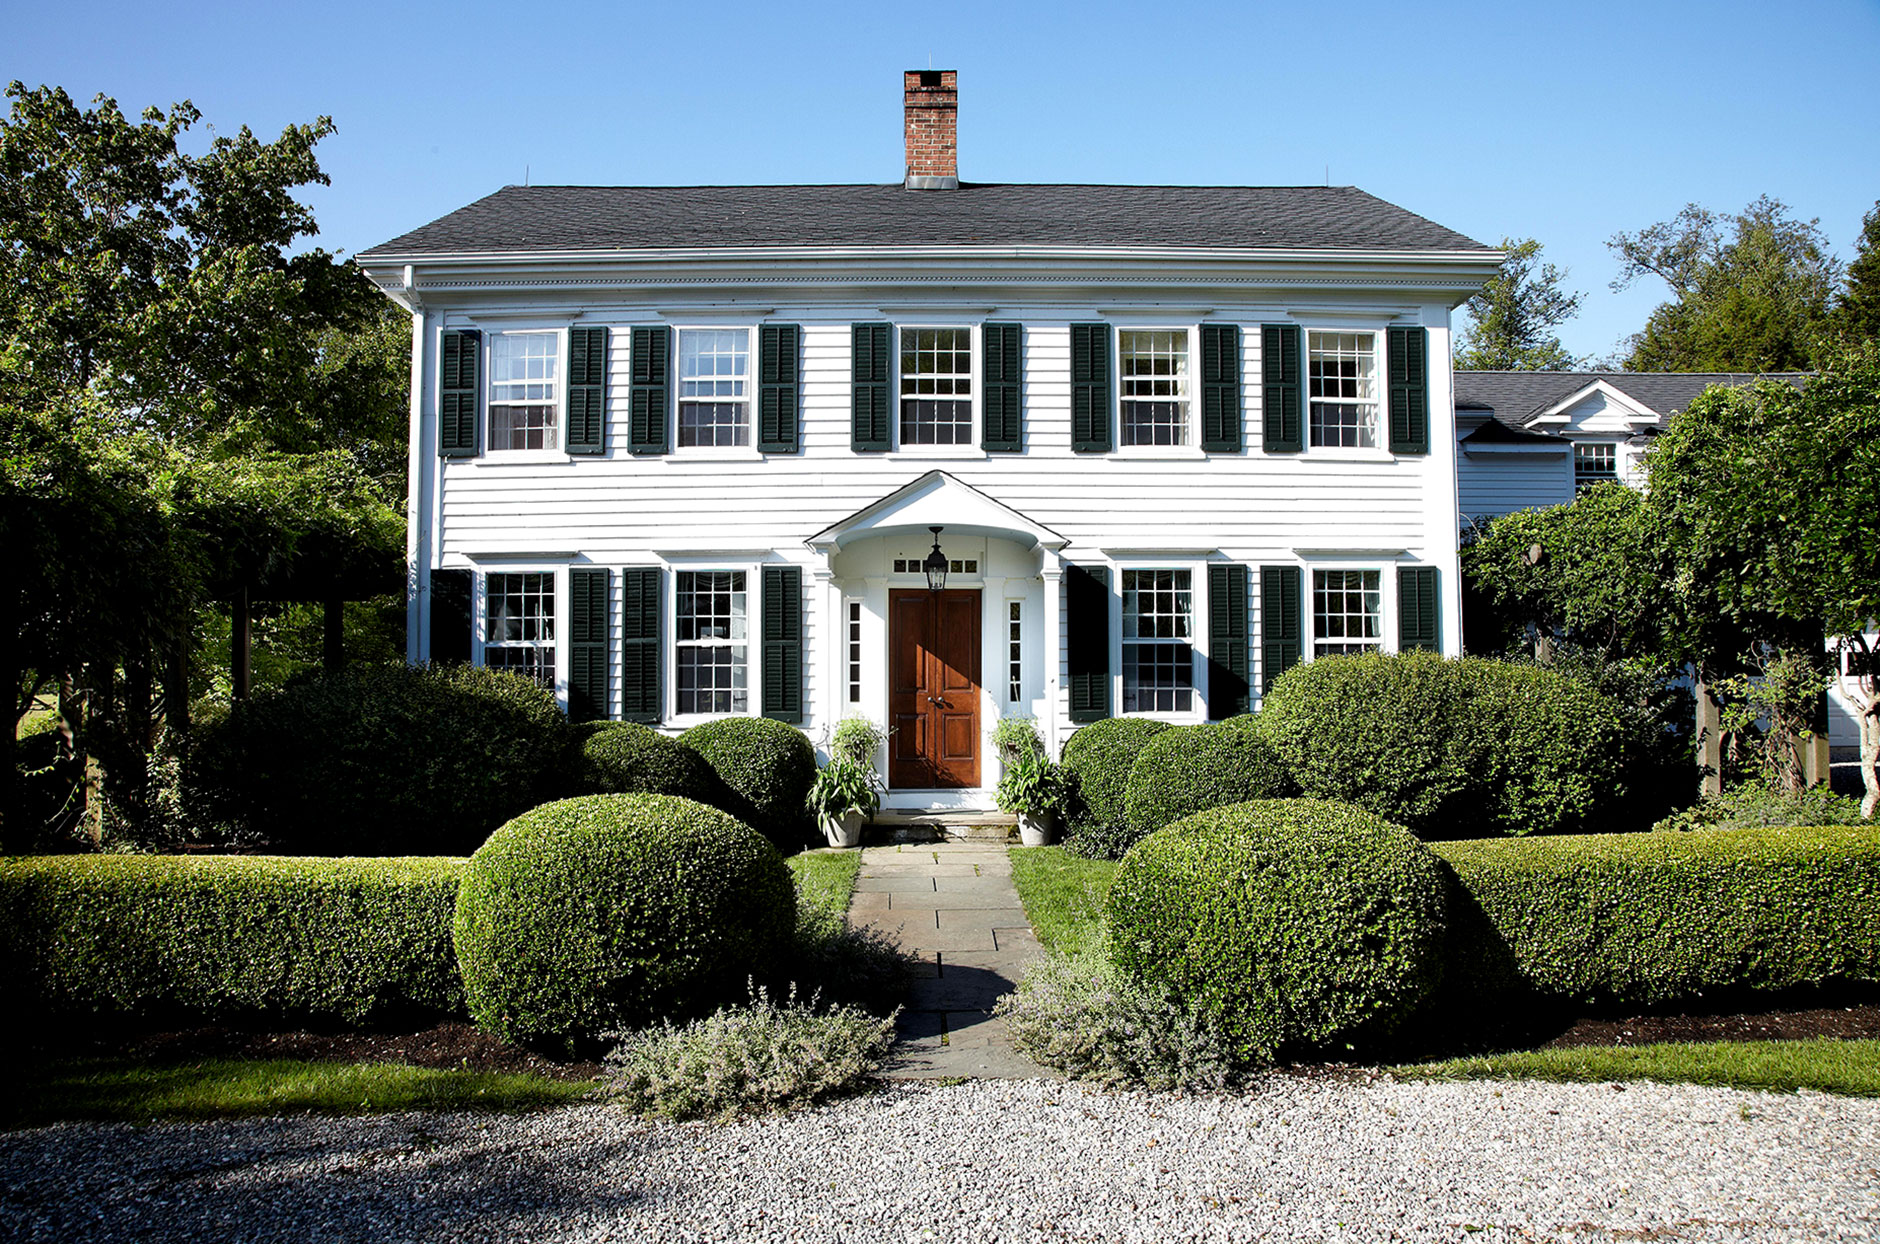 White colonial home with greenery in entryway